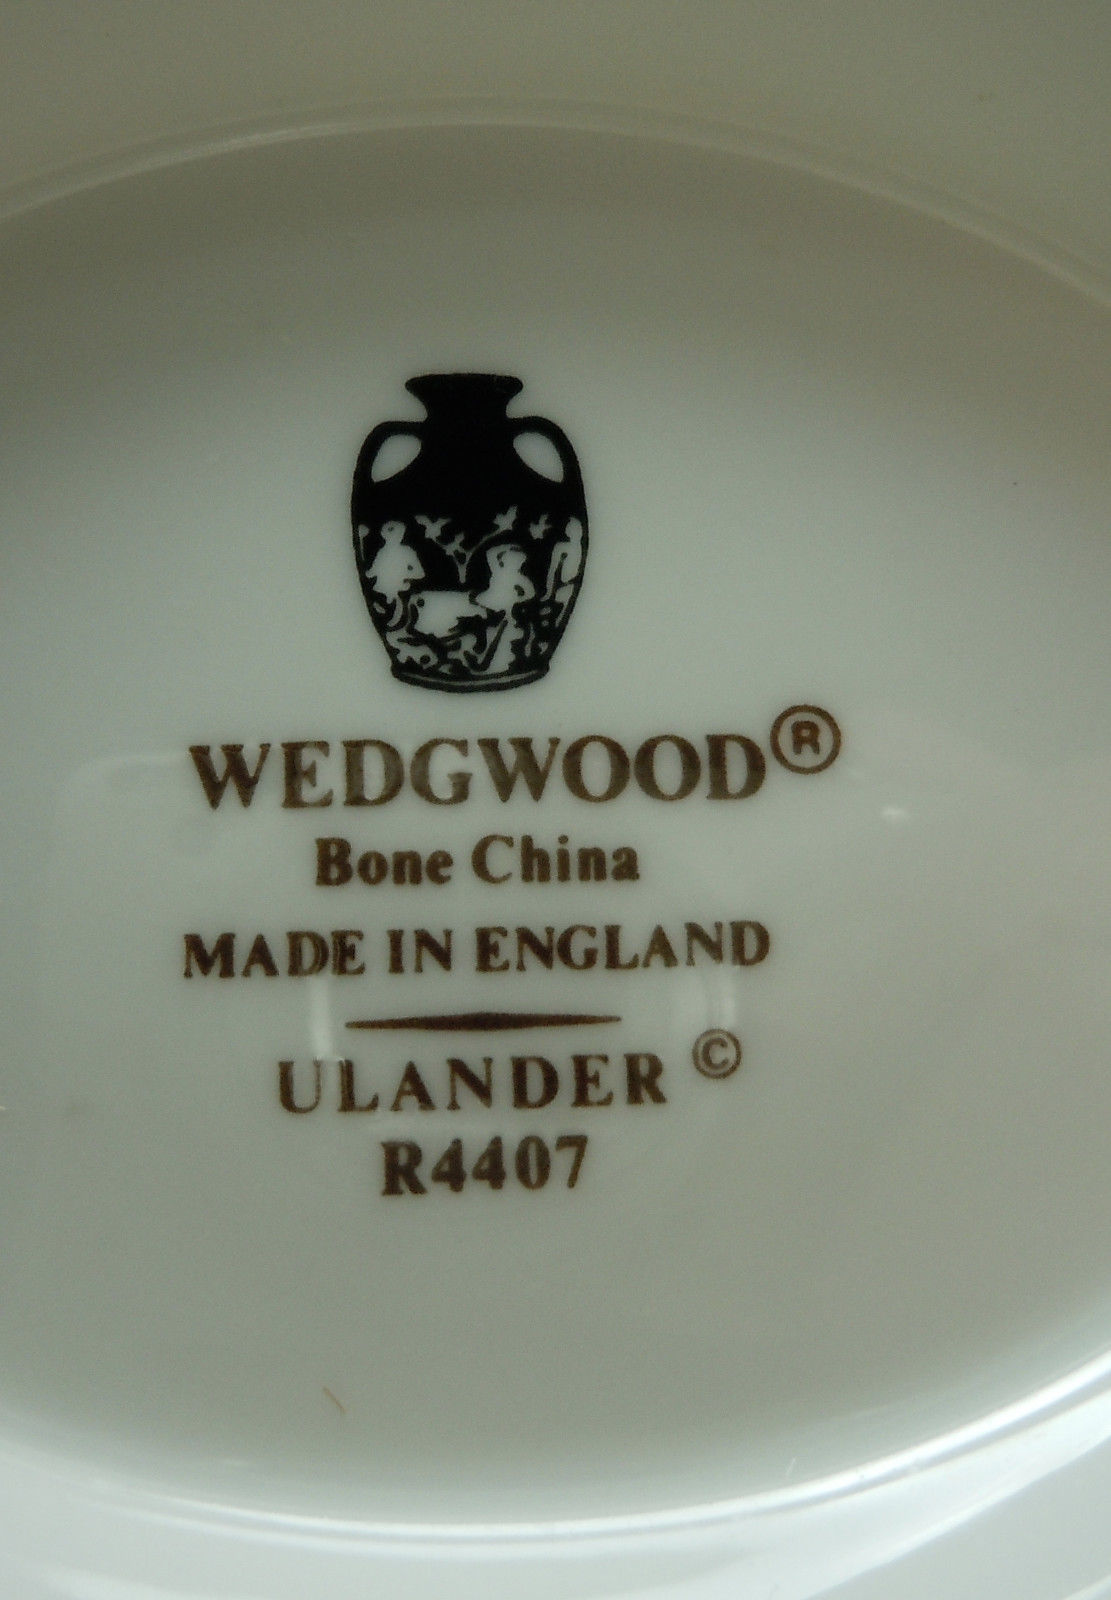 Wedgwood Ulander Black Cup and Saucer Set